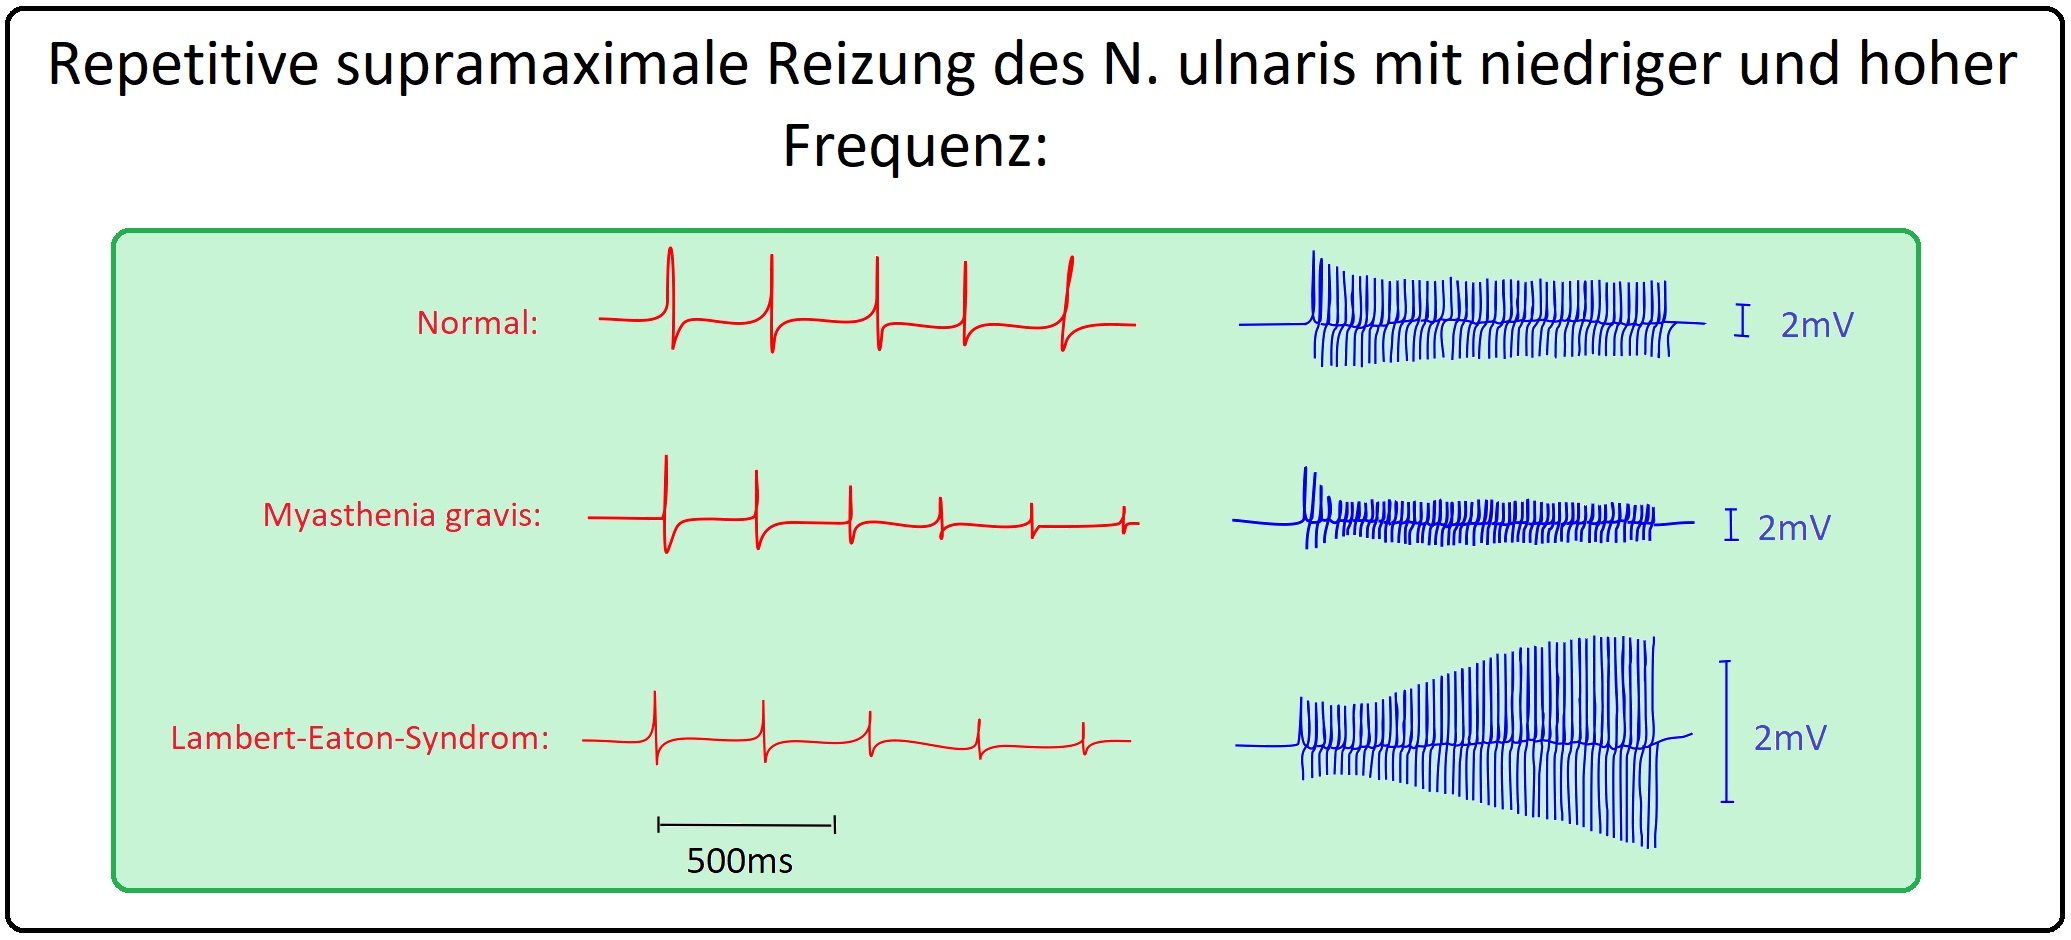 056 Repetitive supramaximale Reizung des N. ulnaris mit hoher